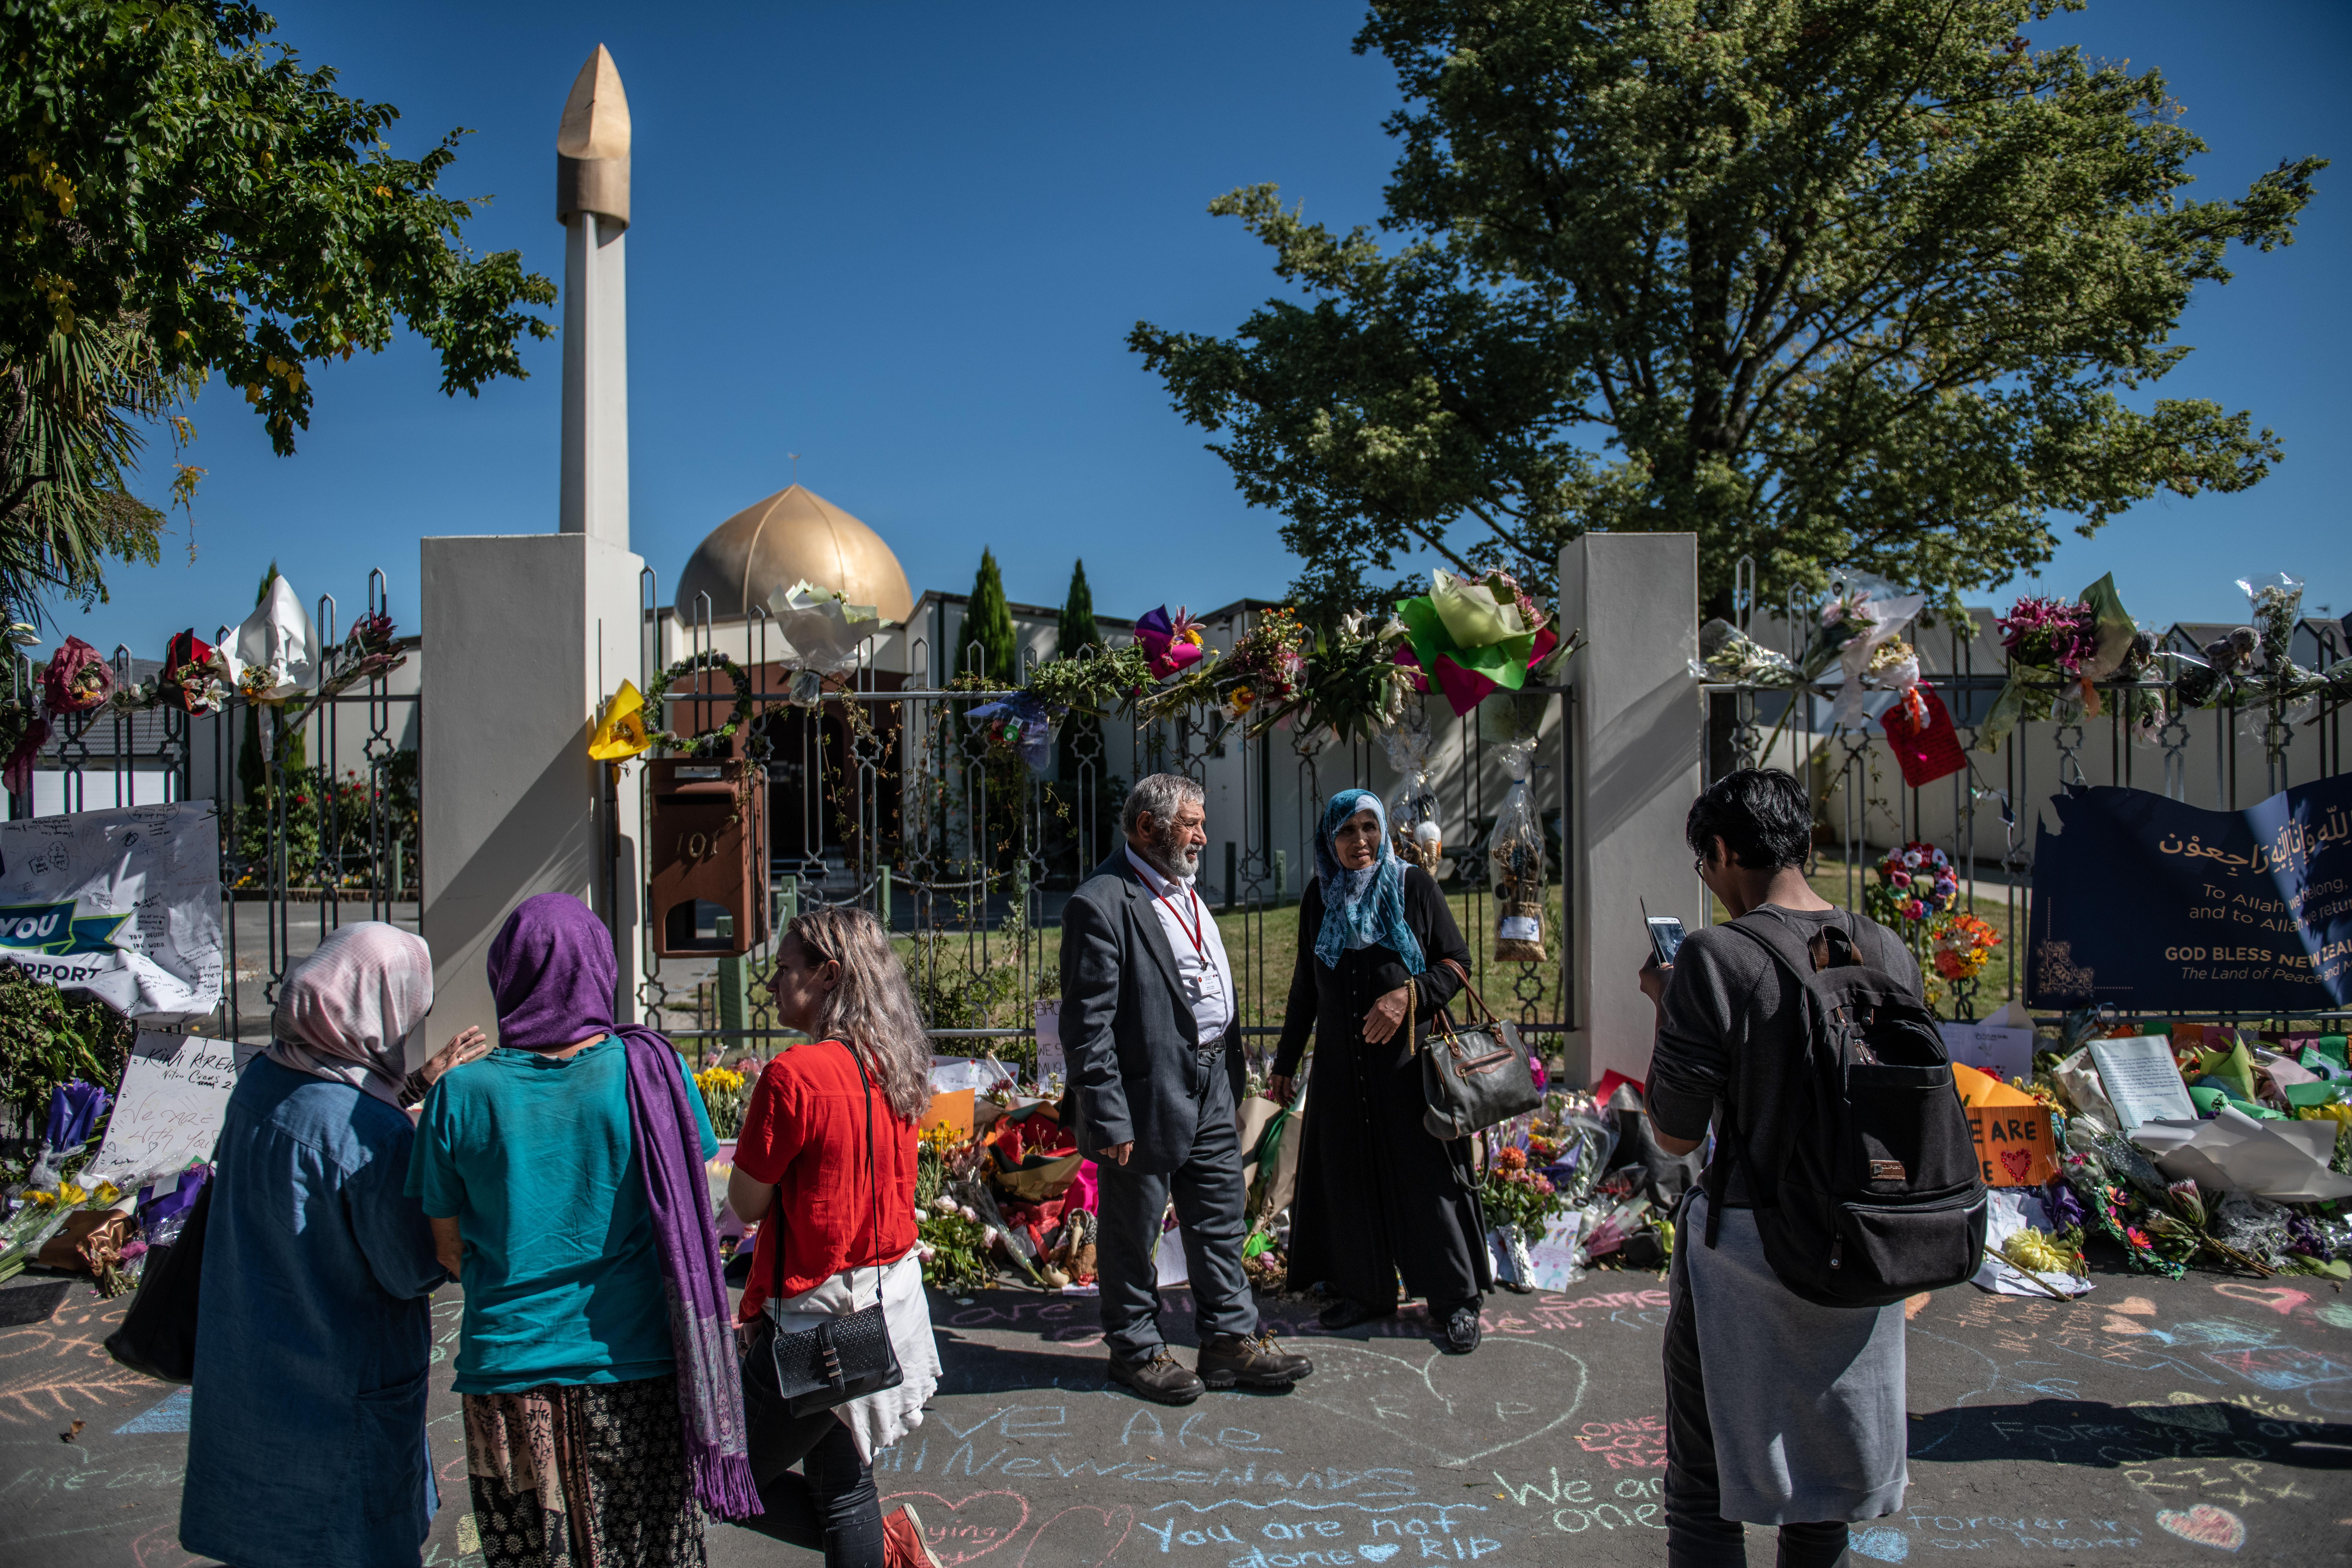 People stand outside the mosque, next to many flowers placed in tribute to the victims of the March 15 attacks.